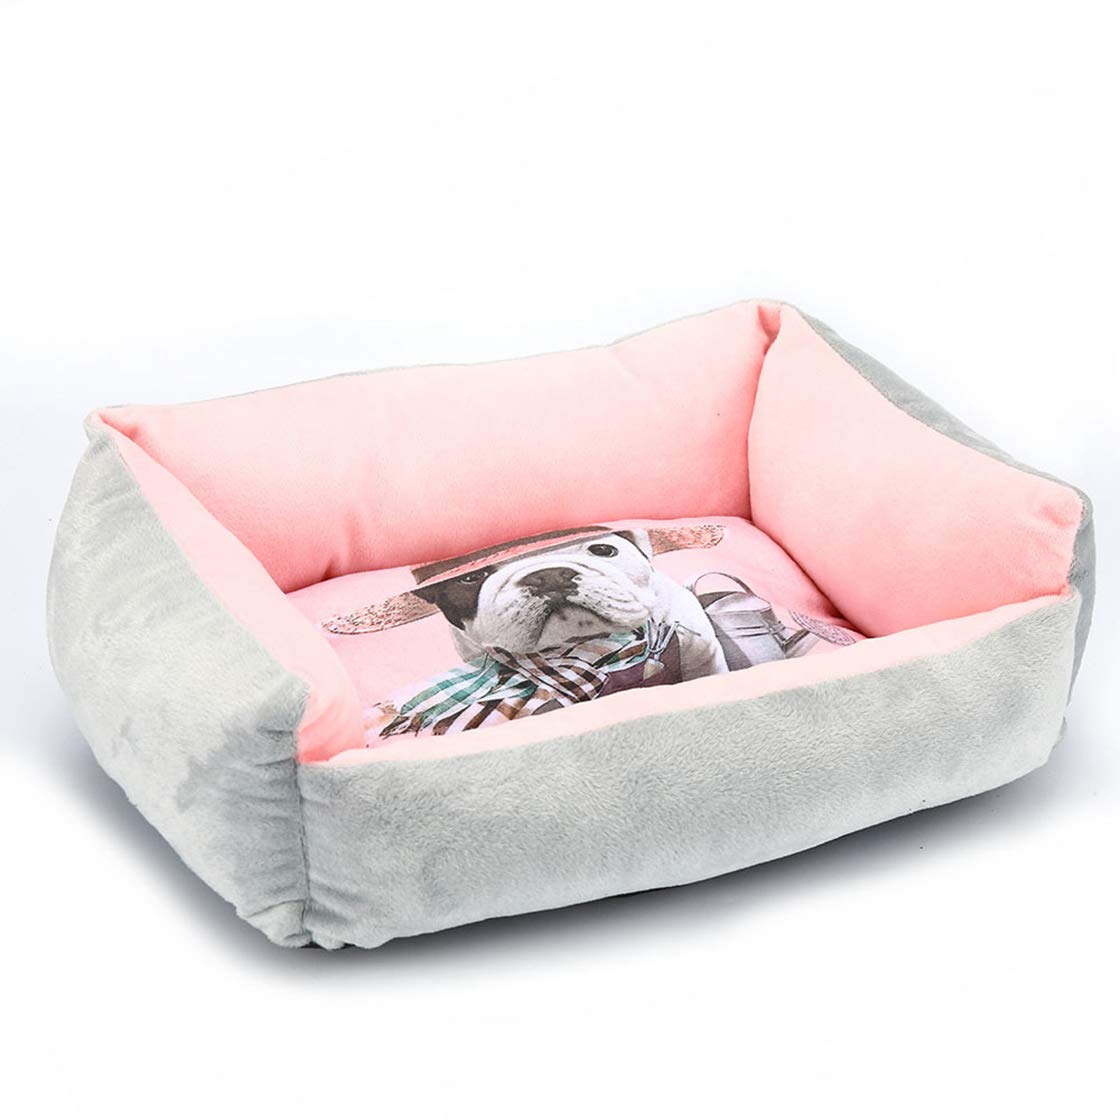 Grey M 50X40CM Grey M 50X40CM Washable Dog Bed Mat Pet Sofa Cotton Kennels Warm Solid Pet Products for Small Large Dogs Cat